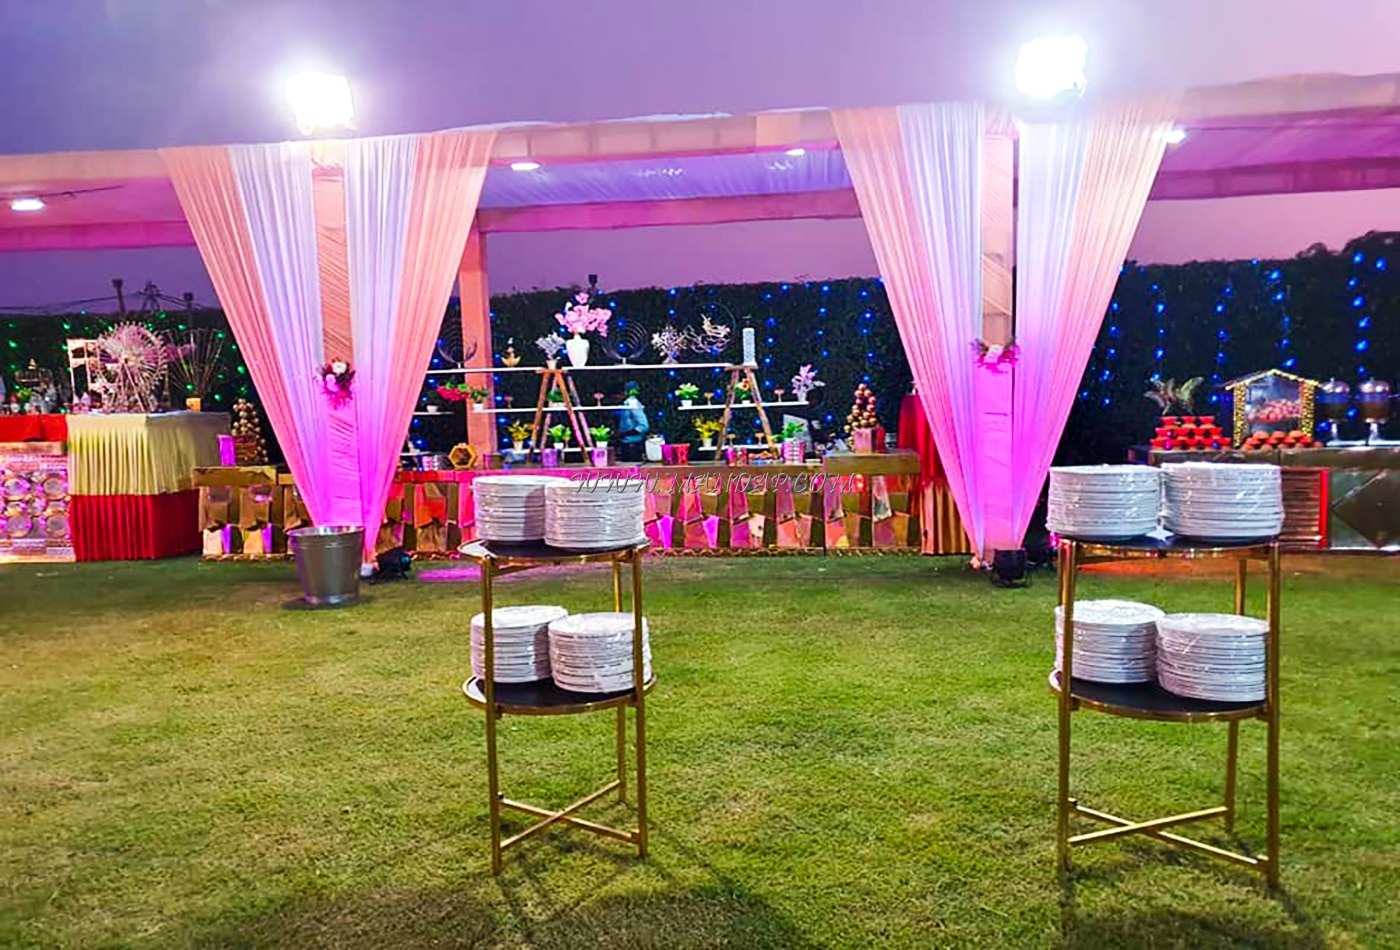 Find the availability of the Muskan Hotel Party Lawn in Manesar, Gurgaon and avail special offers